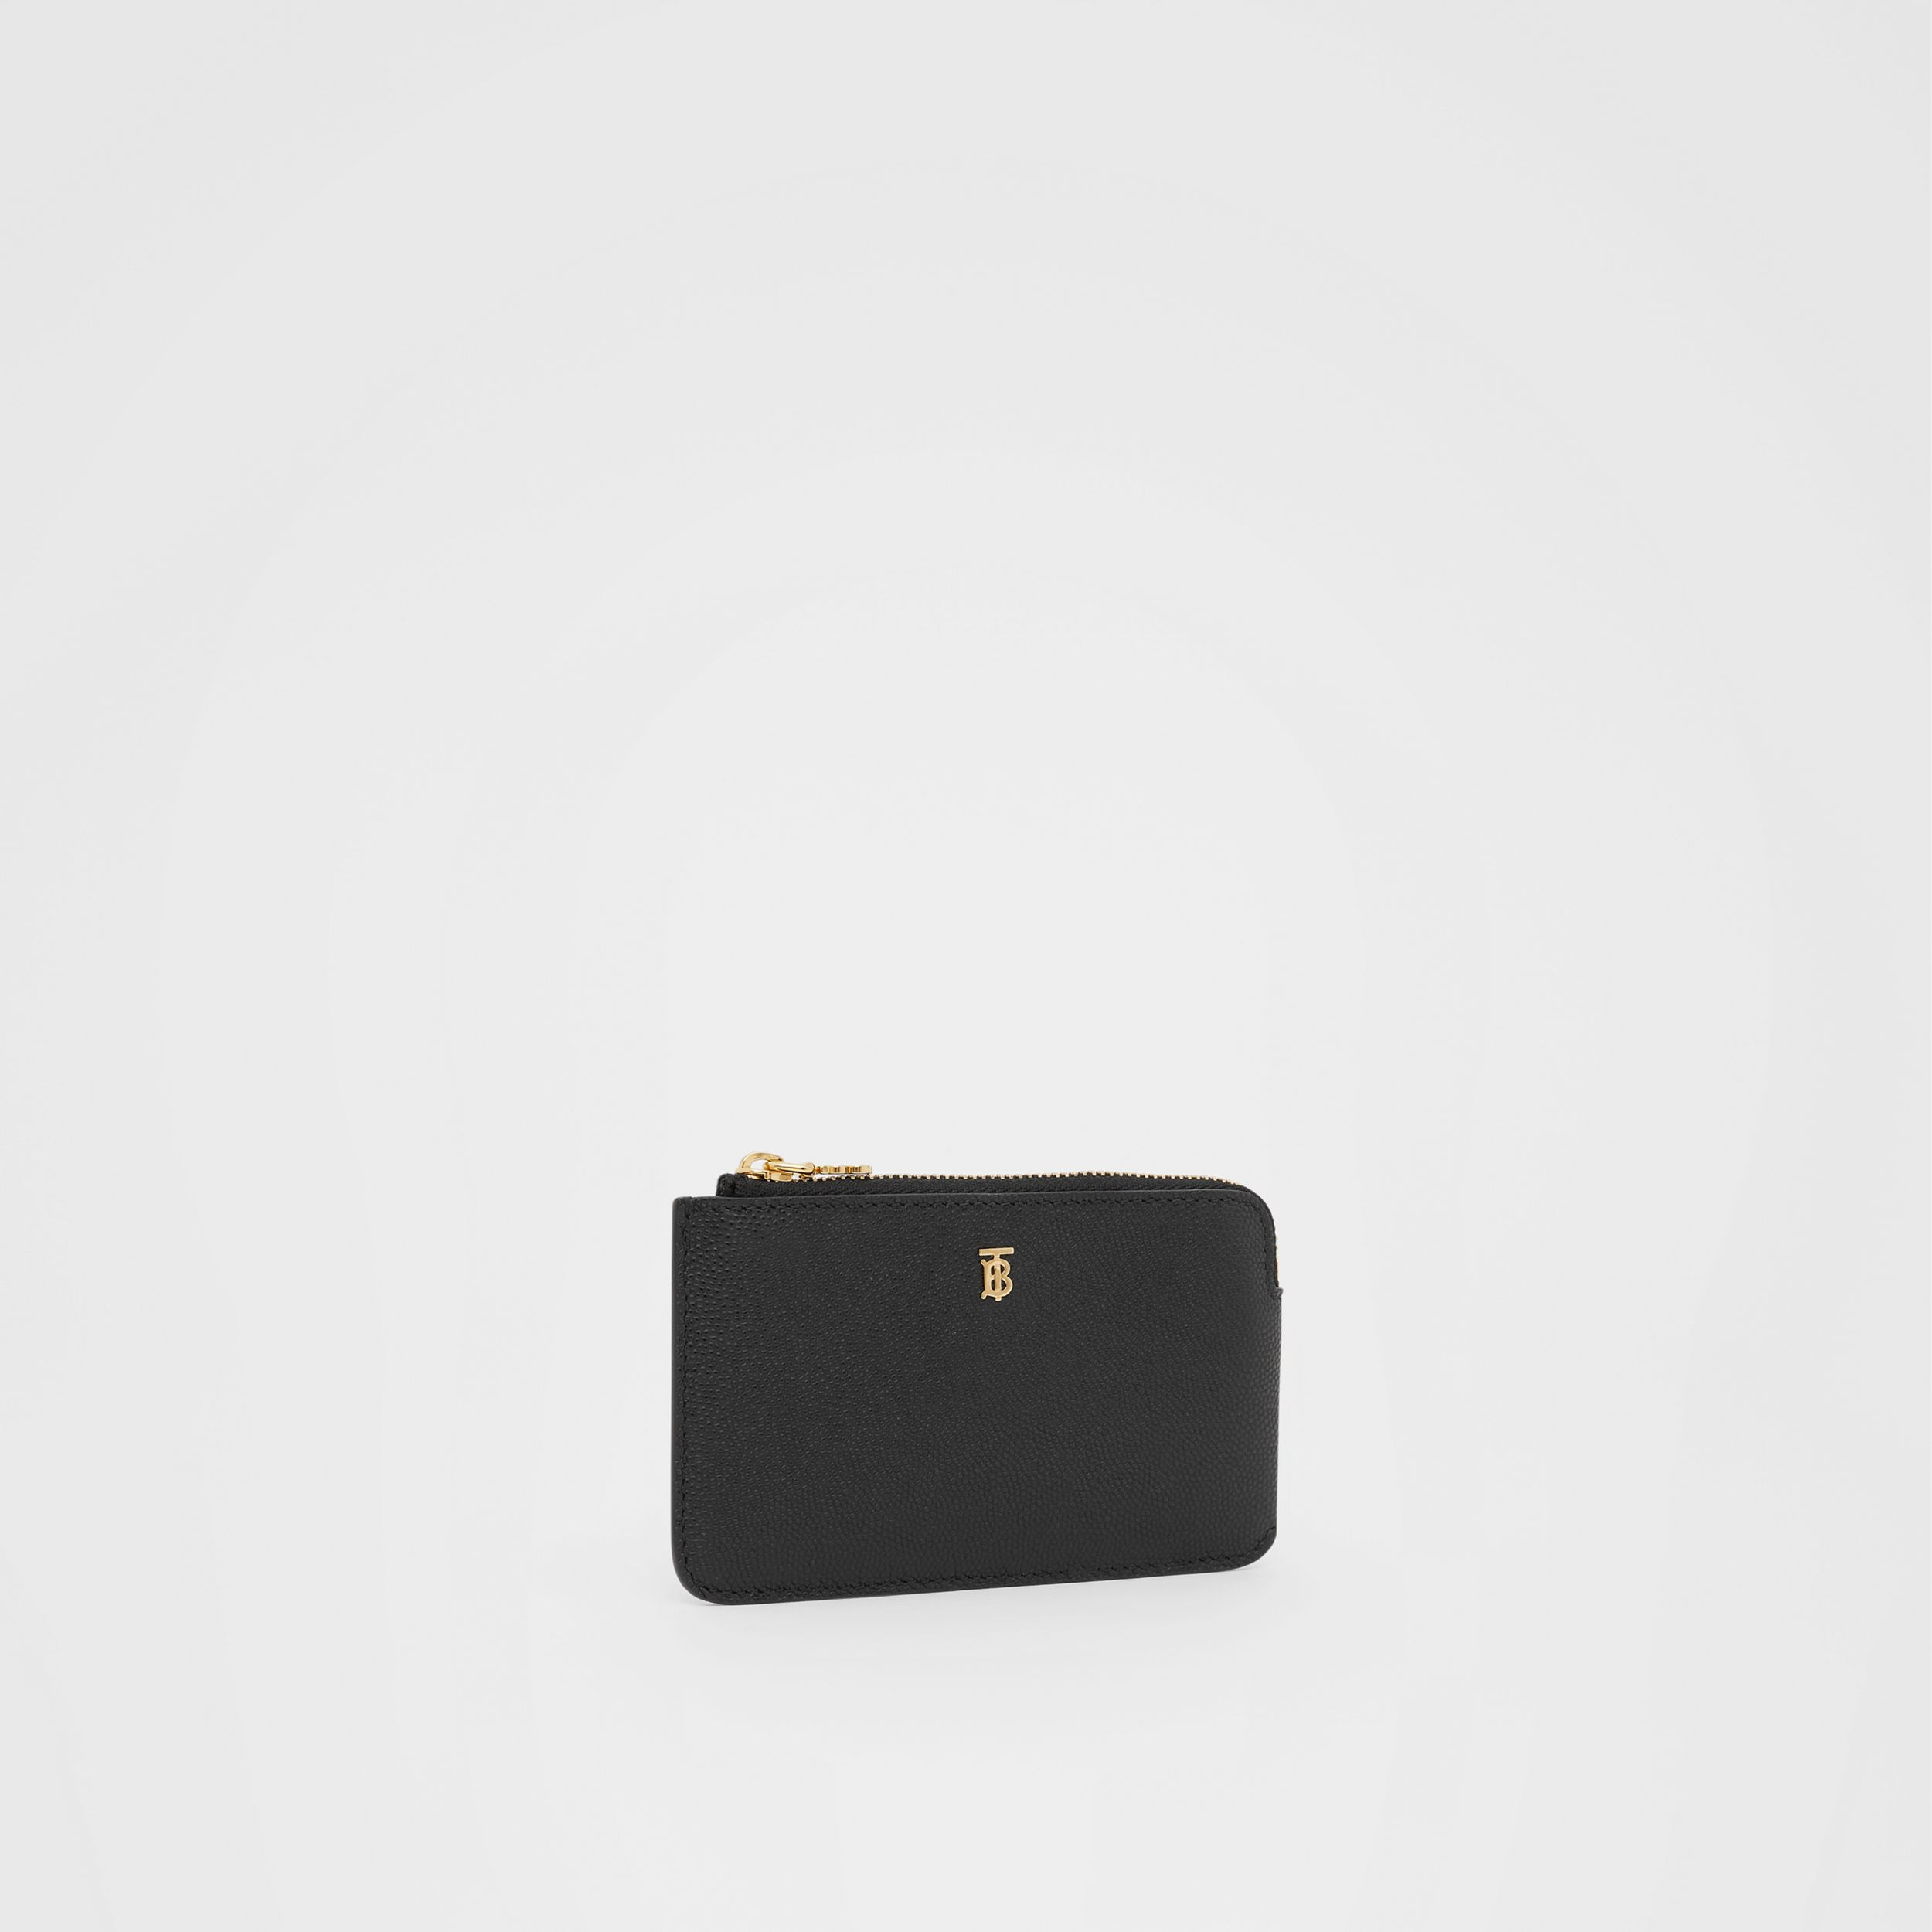 Monogram Motif Grainy Leather Zip Coin Case in Black - Women | Burberry - 4